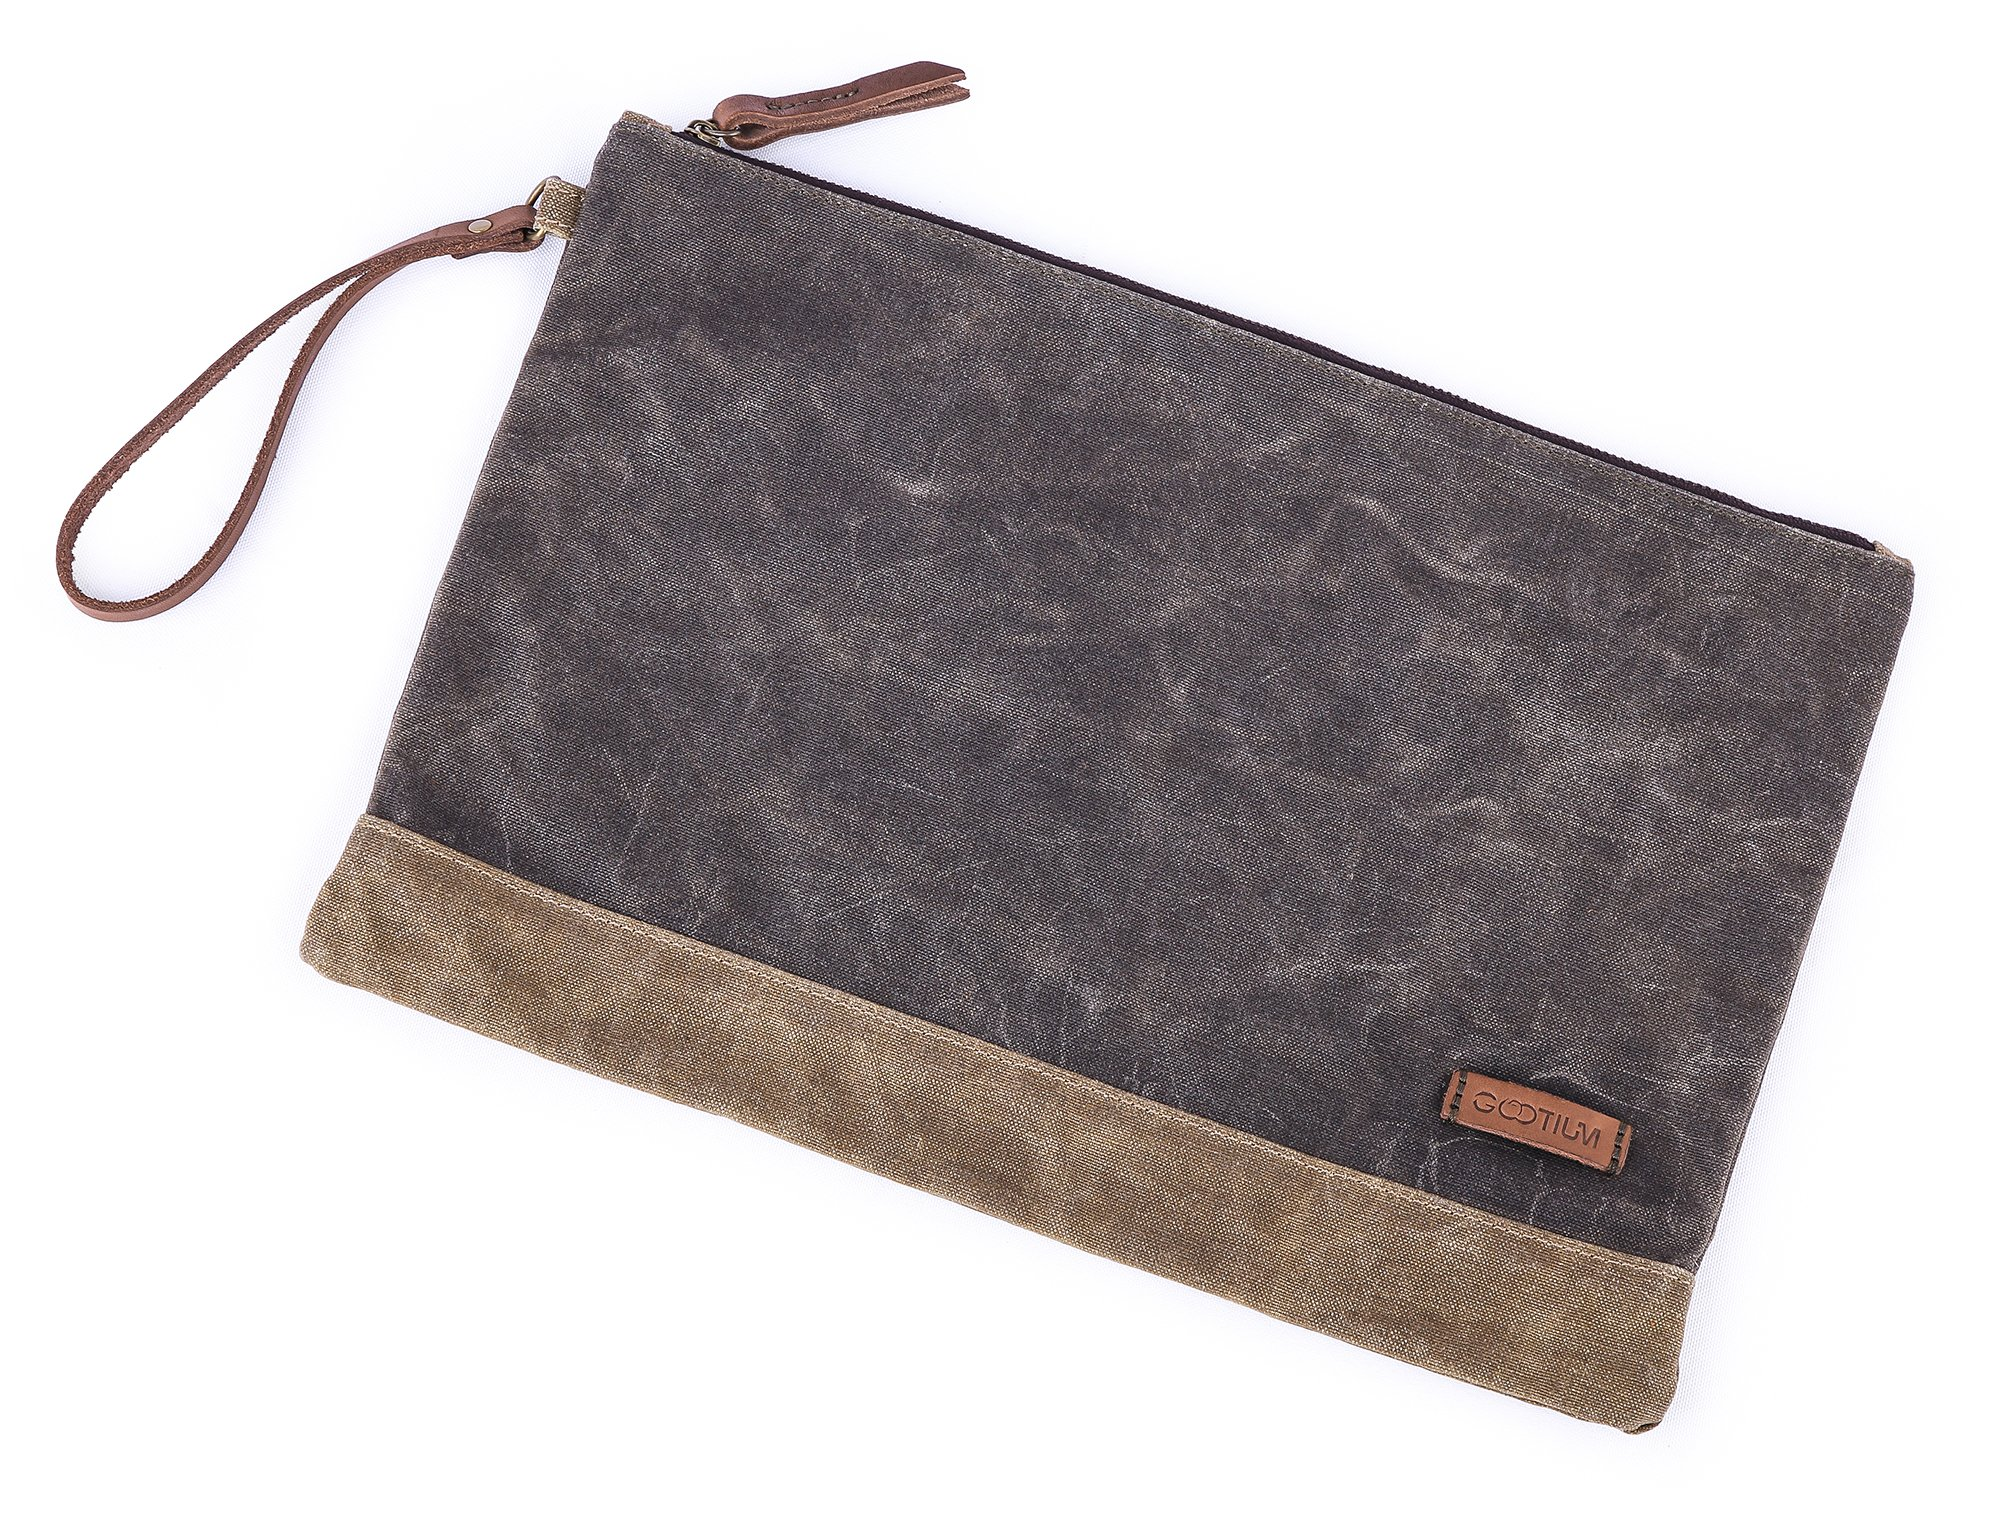 """Gootium Waxed Canvas Zipper Bag - Water Resistant Multipurpose File Pouch for Artists and Office, 13""""x9.4"""", A4 Size, Green"""